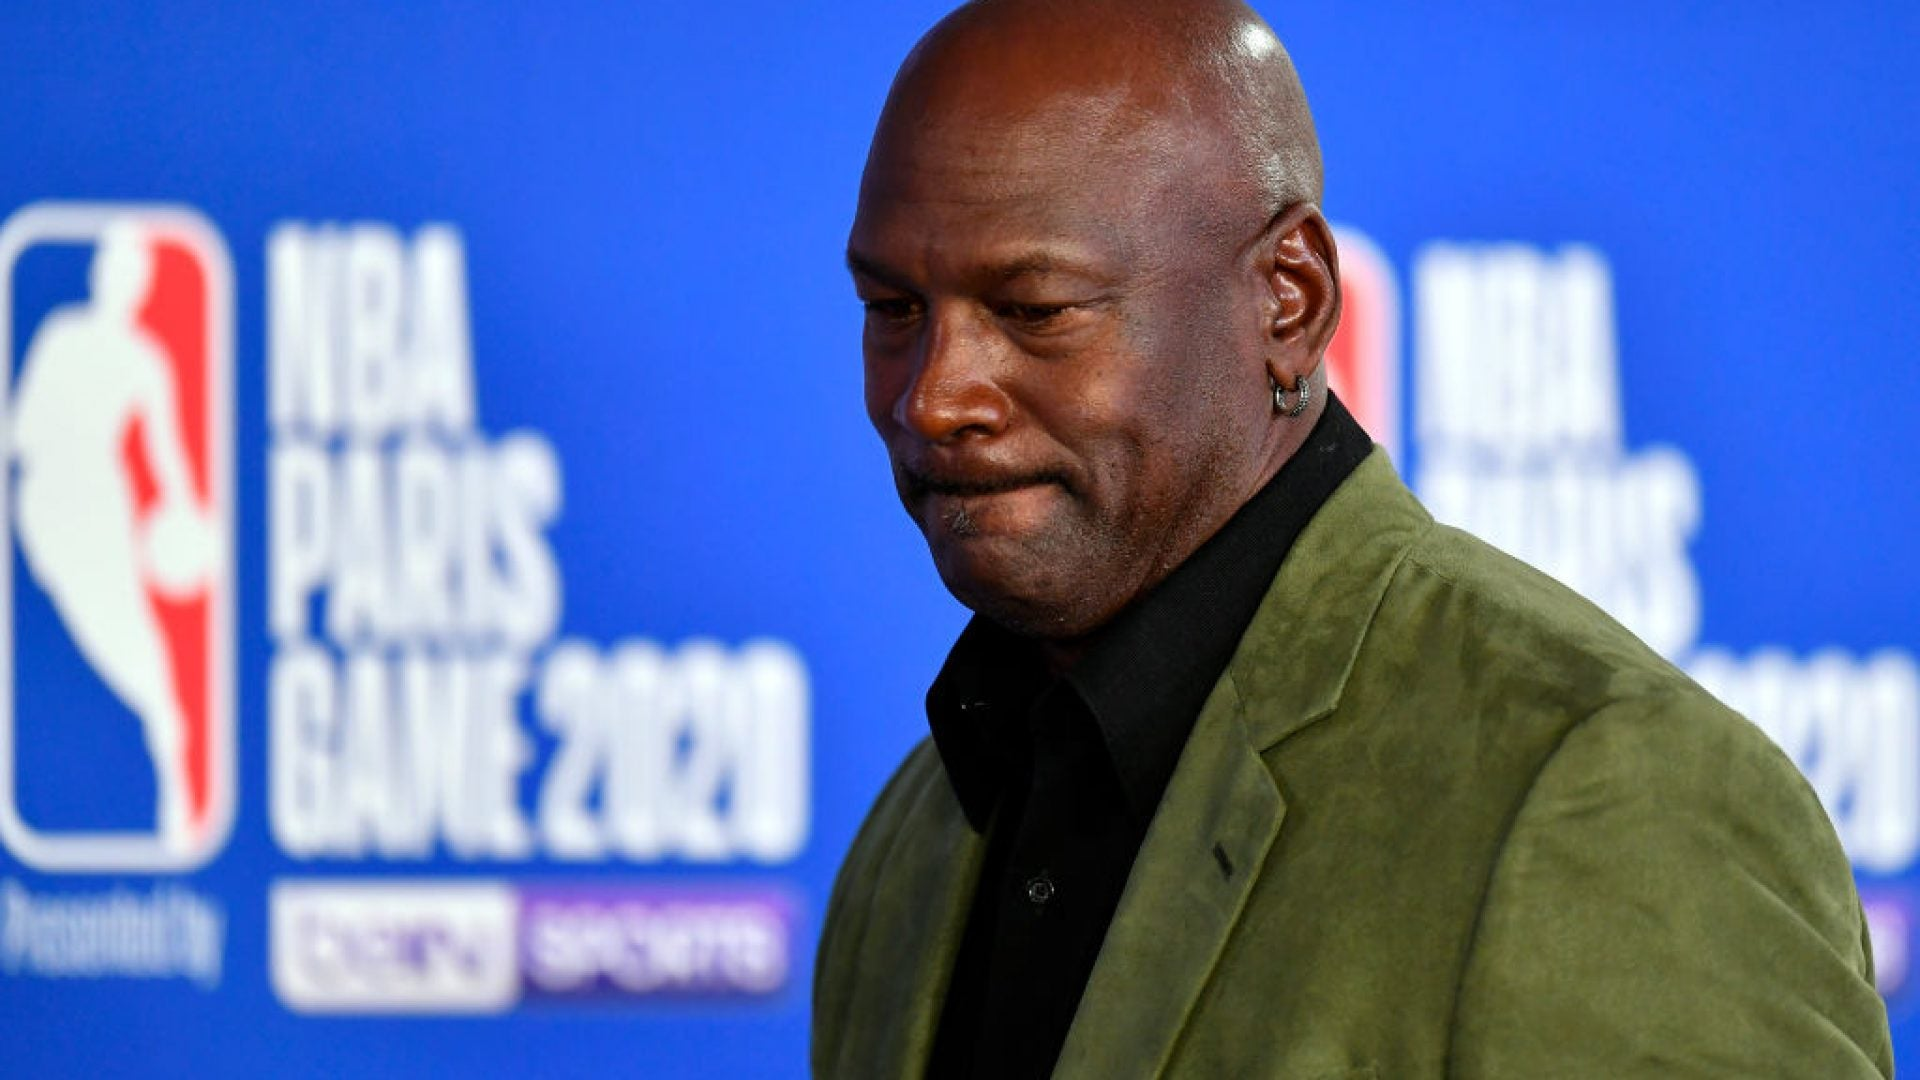 Michael Jordan Speaks Out After George Floyd's Death